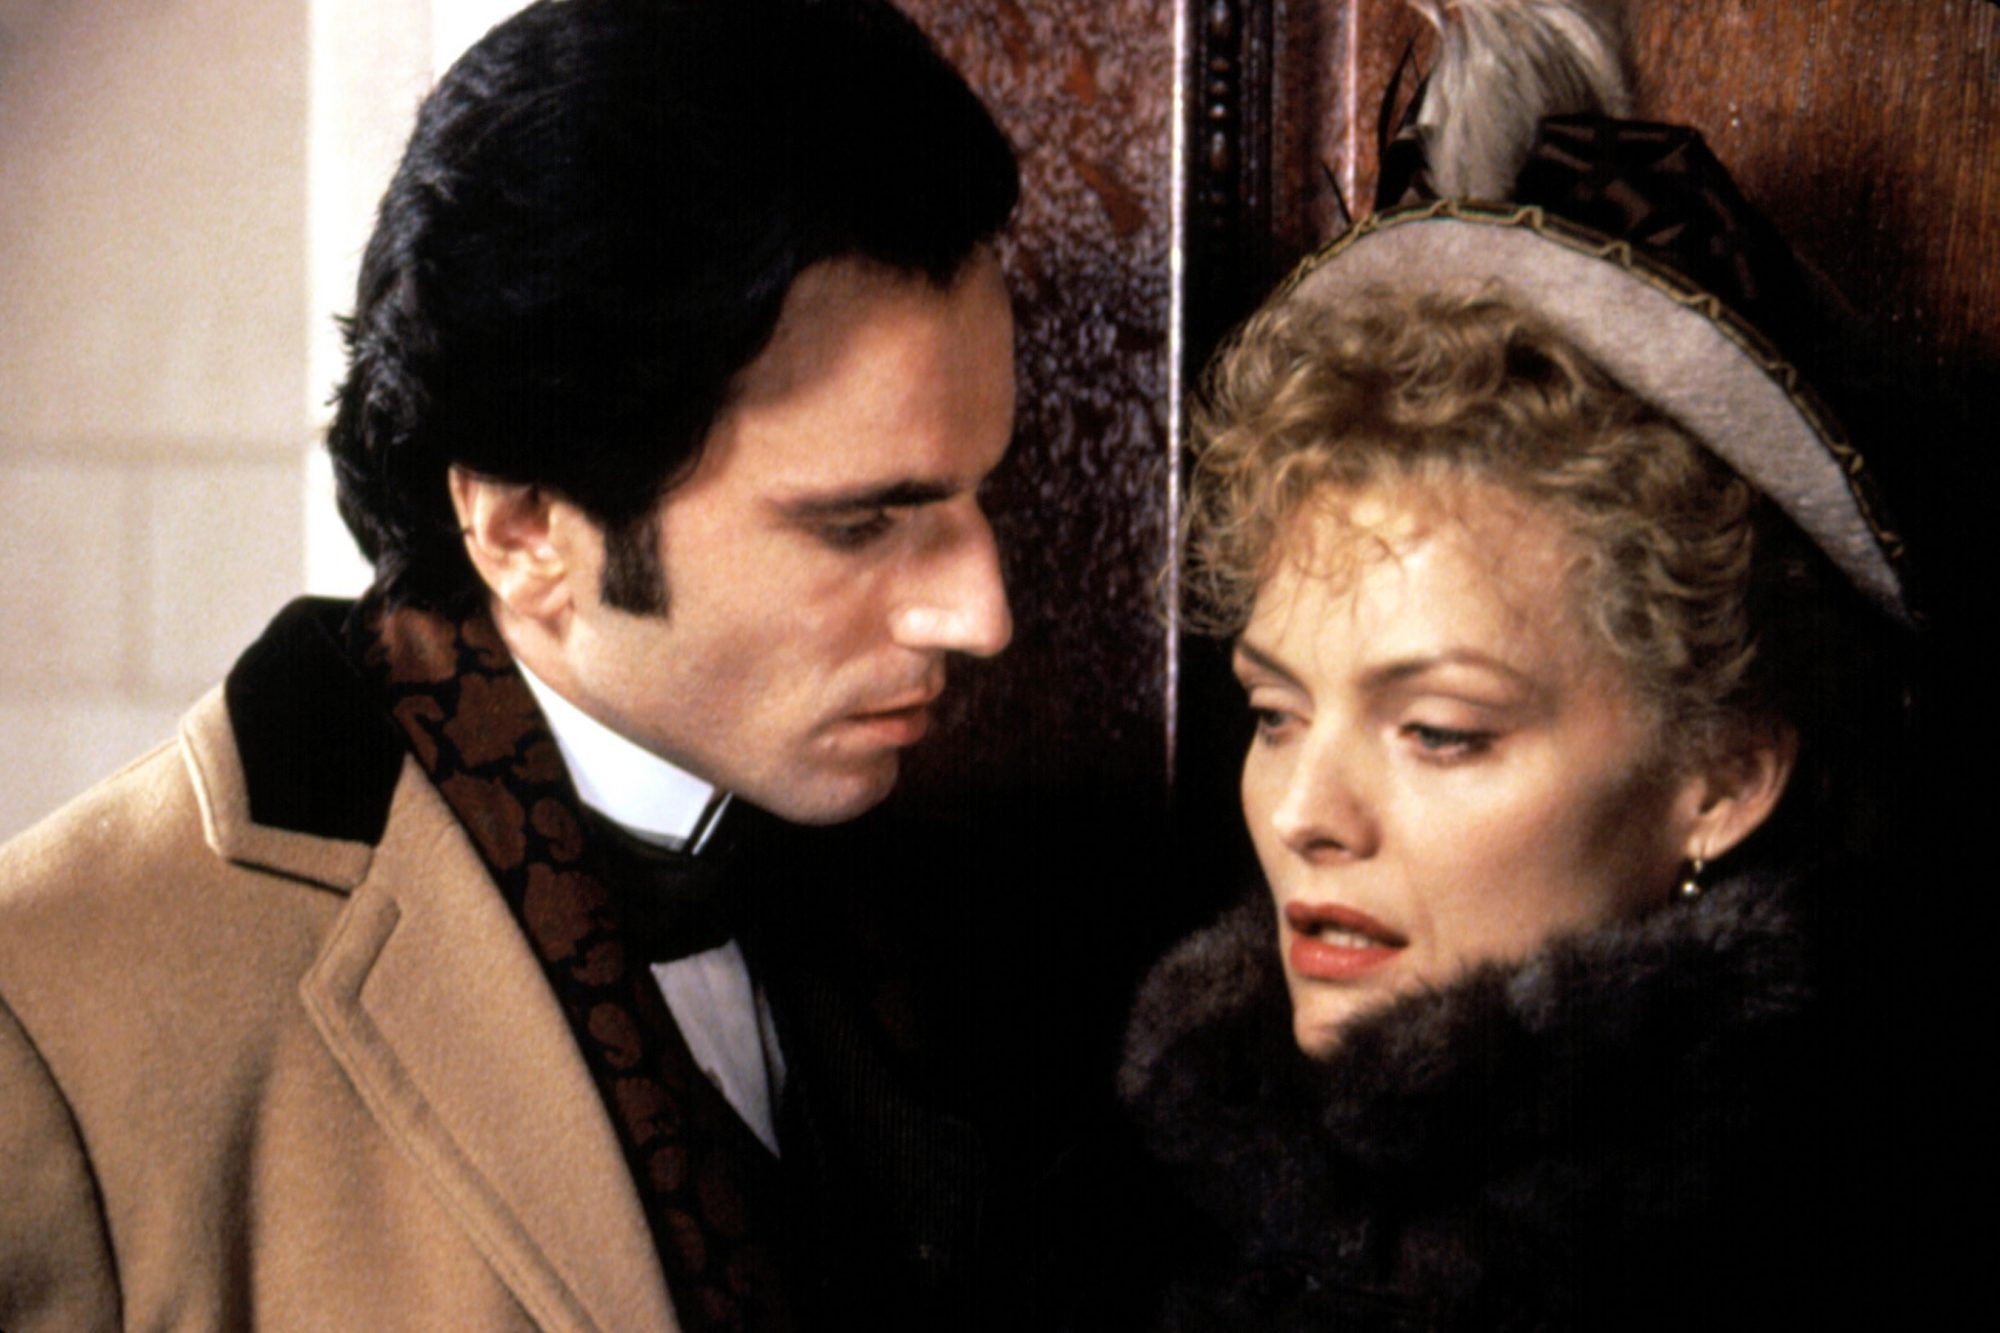 THE AGE OF INNOCENCE, Daniel Day-Lewis, Michelle Pfeiffer, 1993. (c) Columbia Pictures/Courtesy Ever